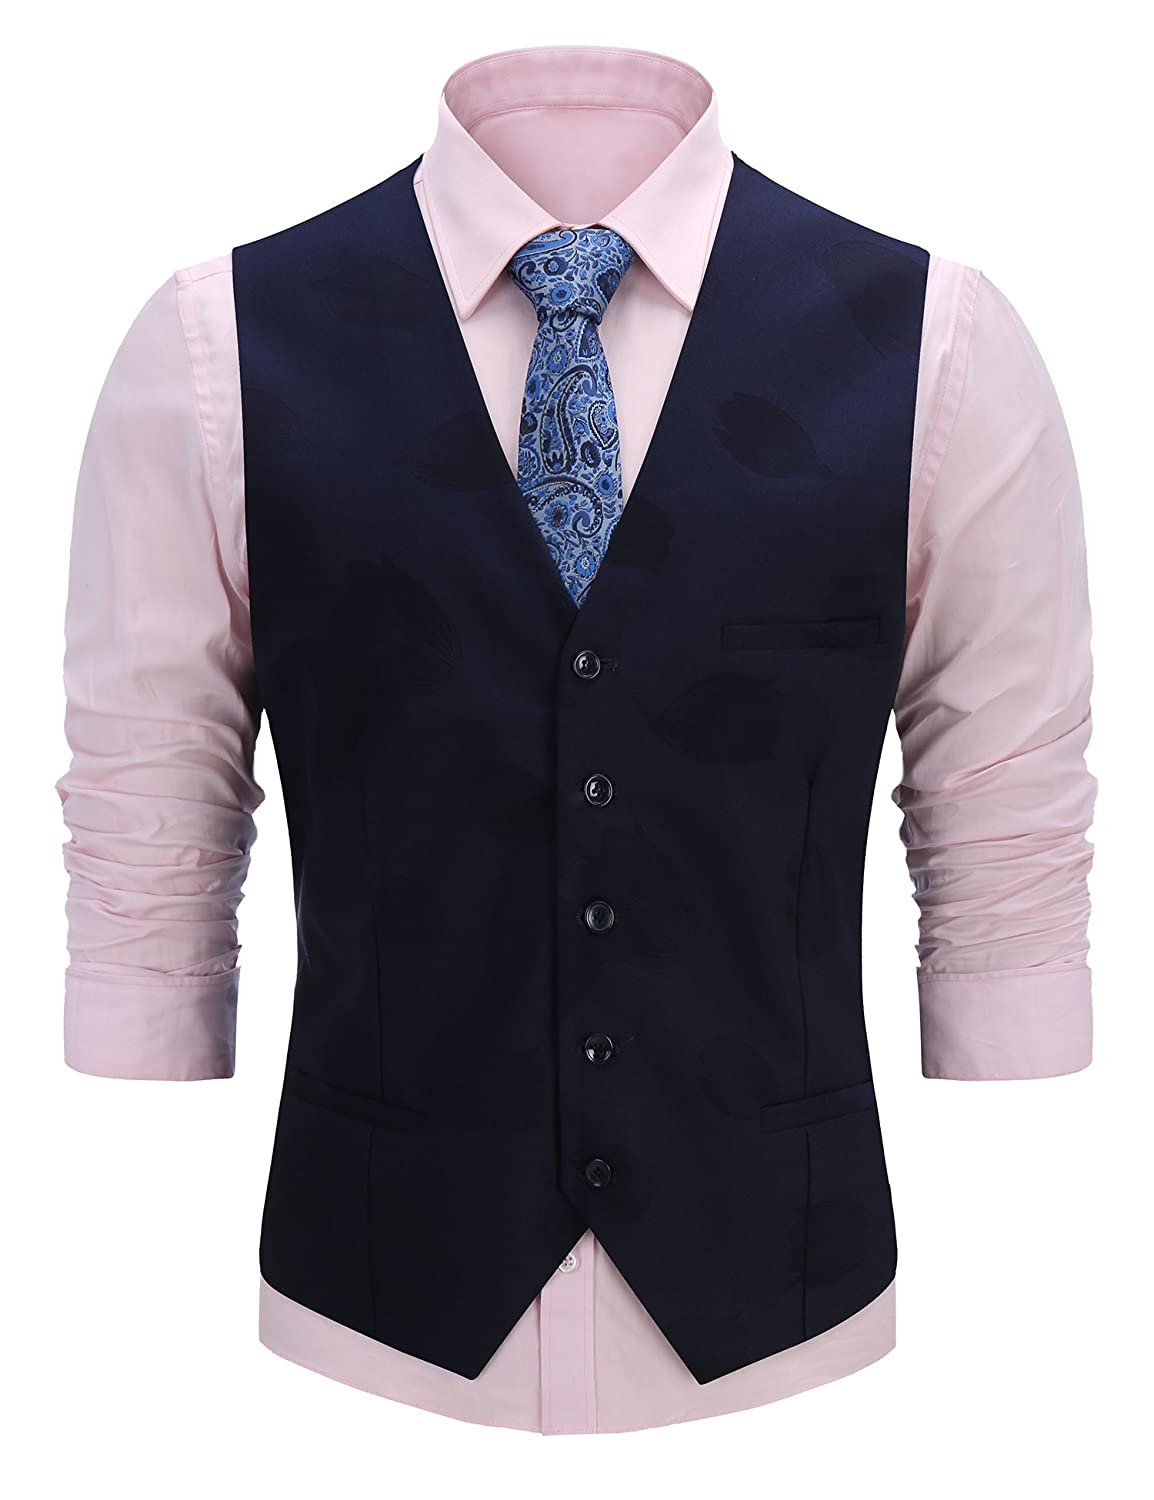 c608860a10f8 Material: 35% Cotton, 65% Polyester Two real pockets for your convenience,  adjustable back strap, very unique style. Men\'s fashion bussiness suit  vest, ...